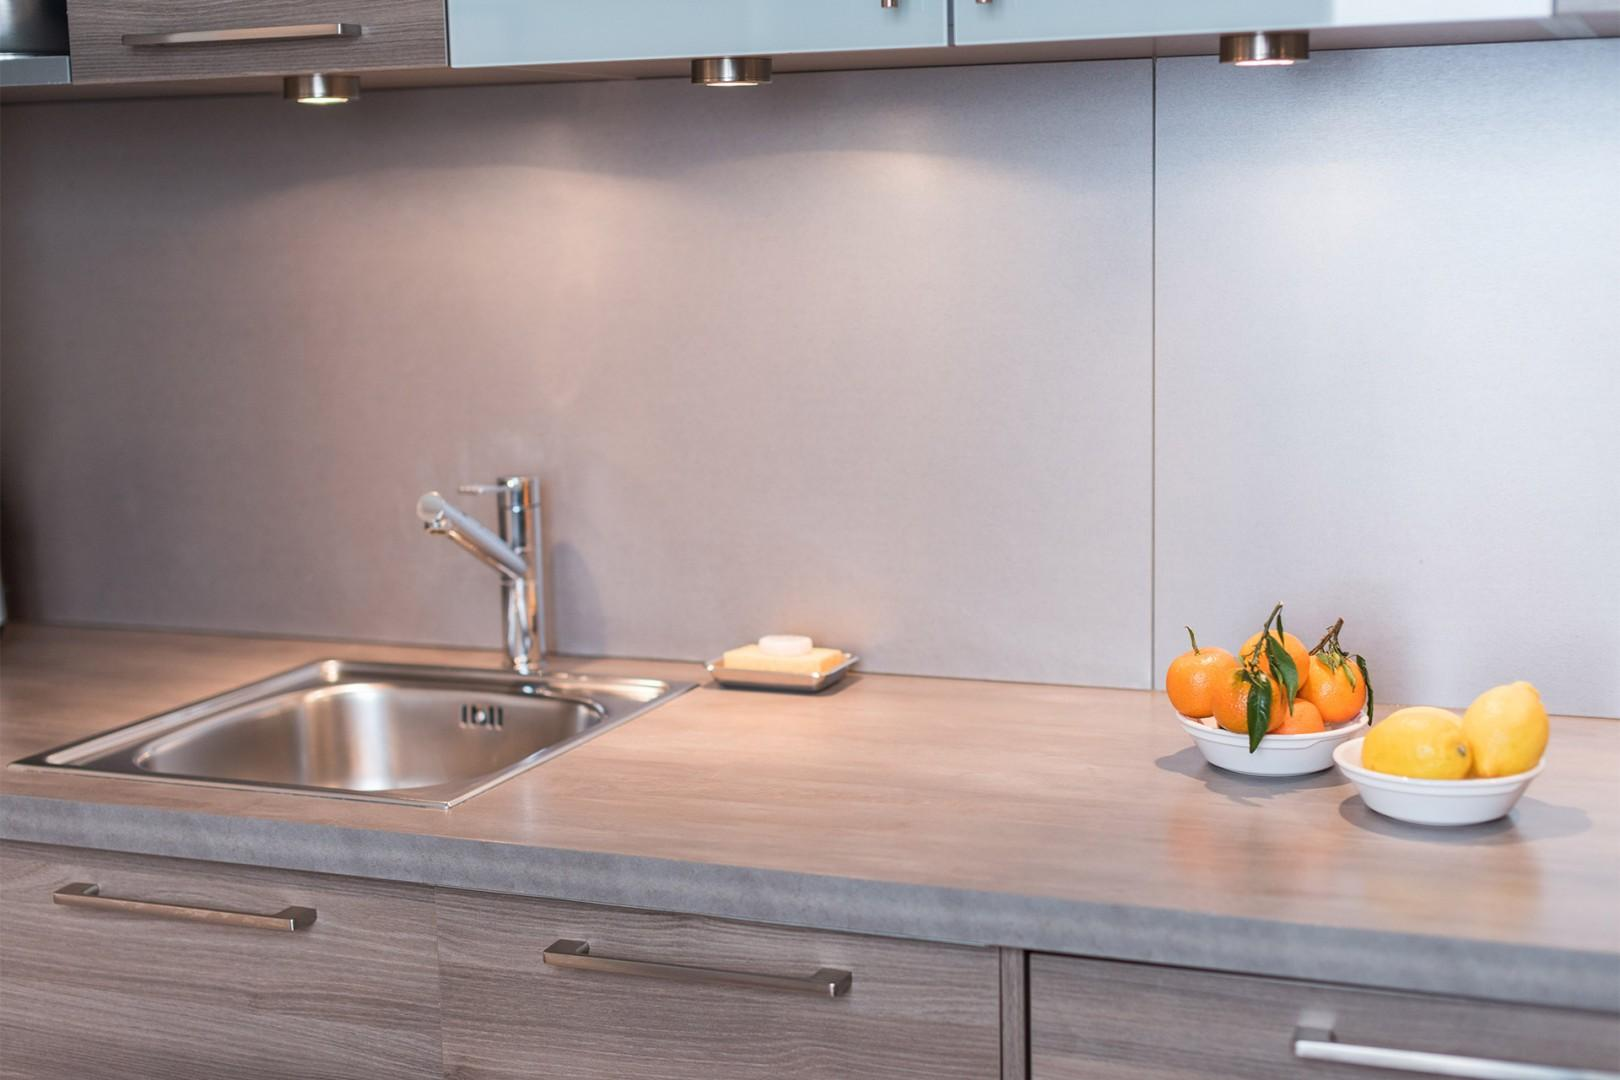 There is lots of counter space in the kitchen for your convenience.